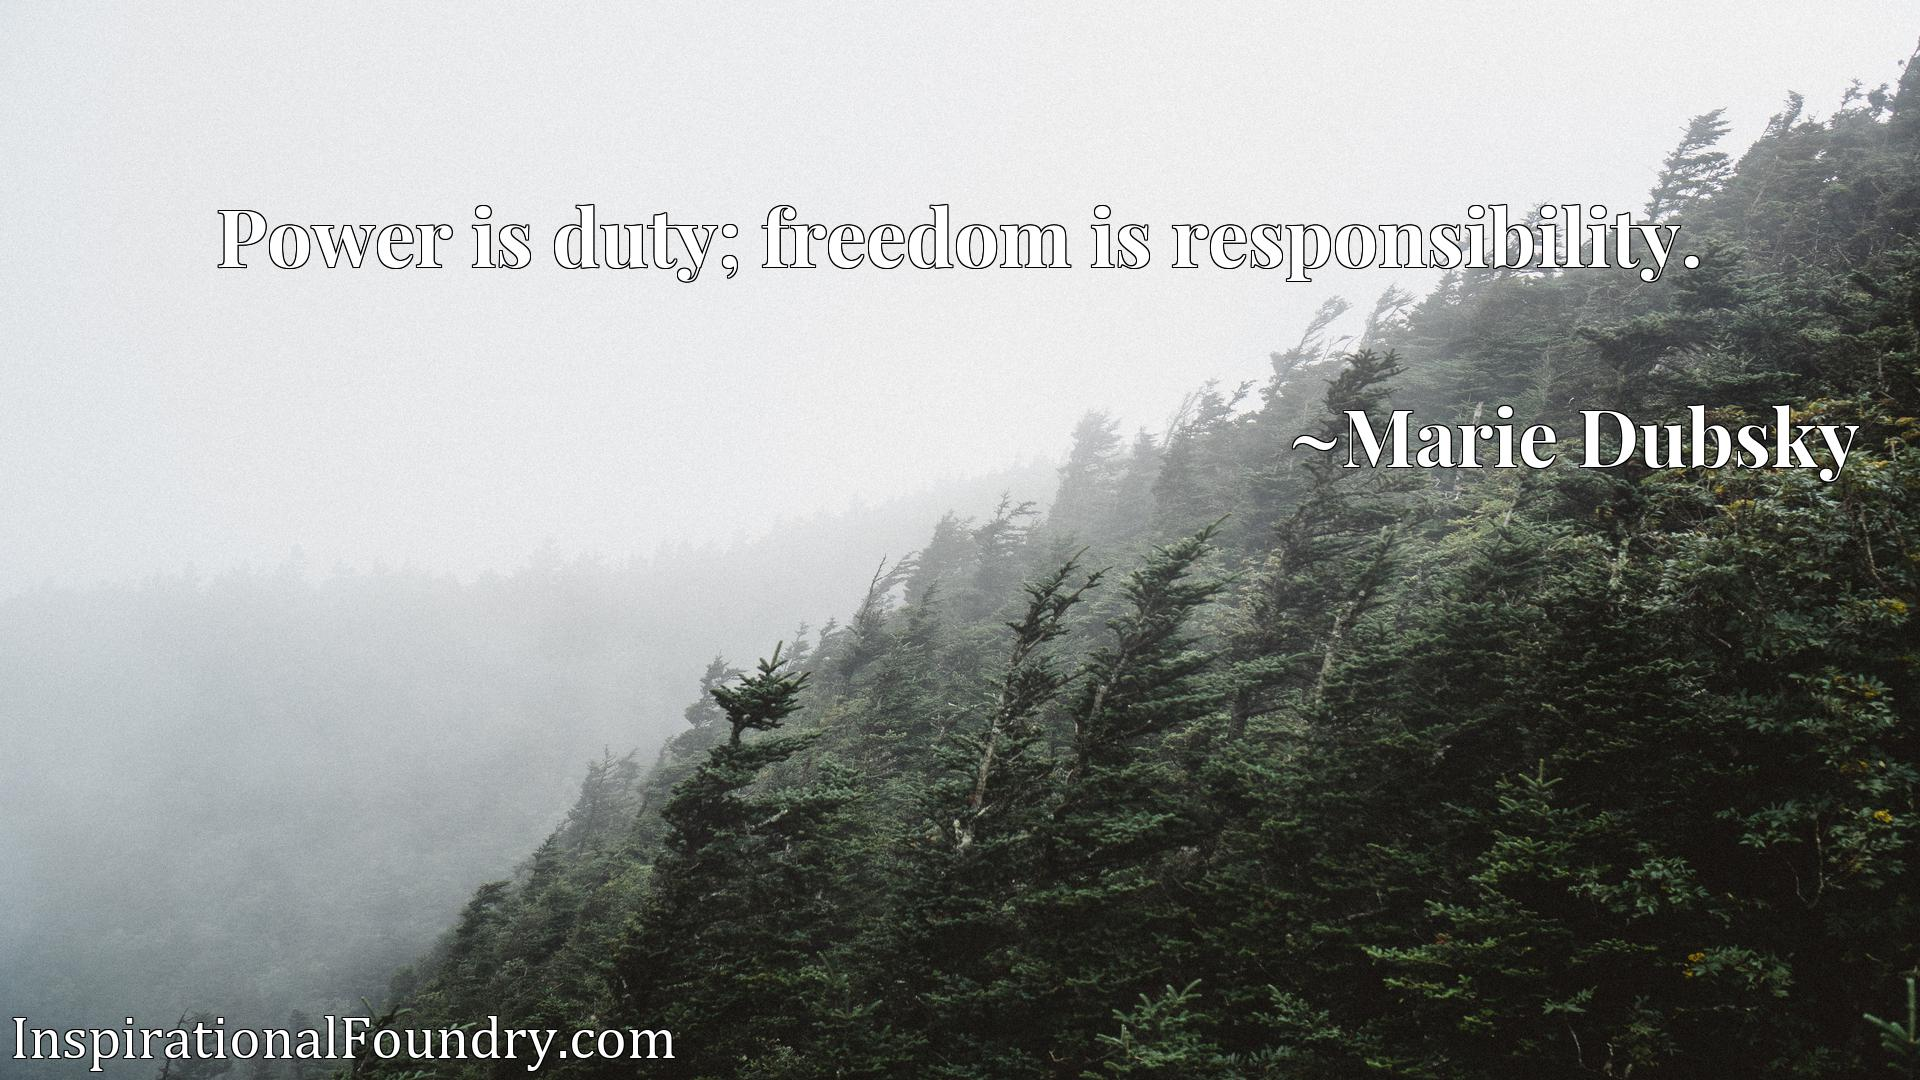 Quote Picture :Power is duty; freedom is responsibility.